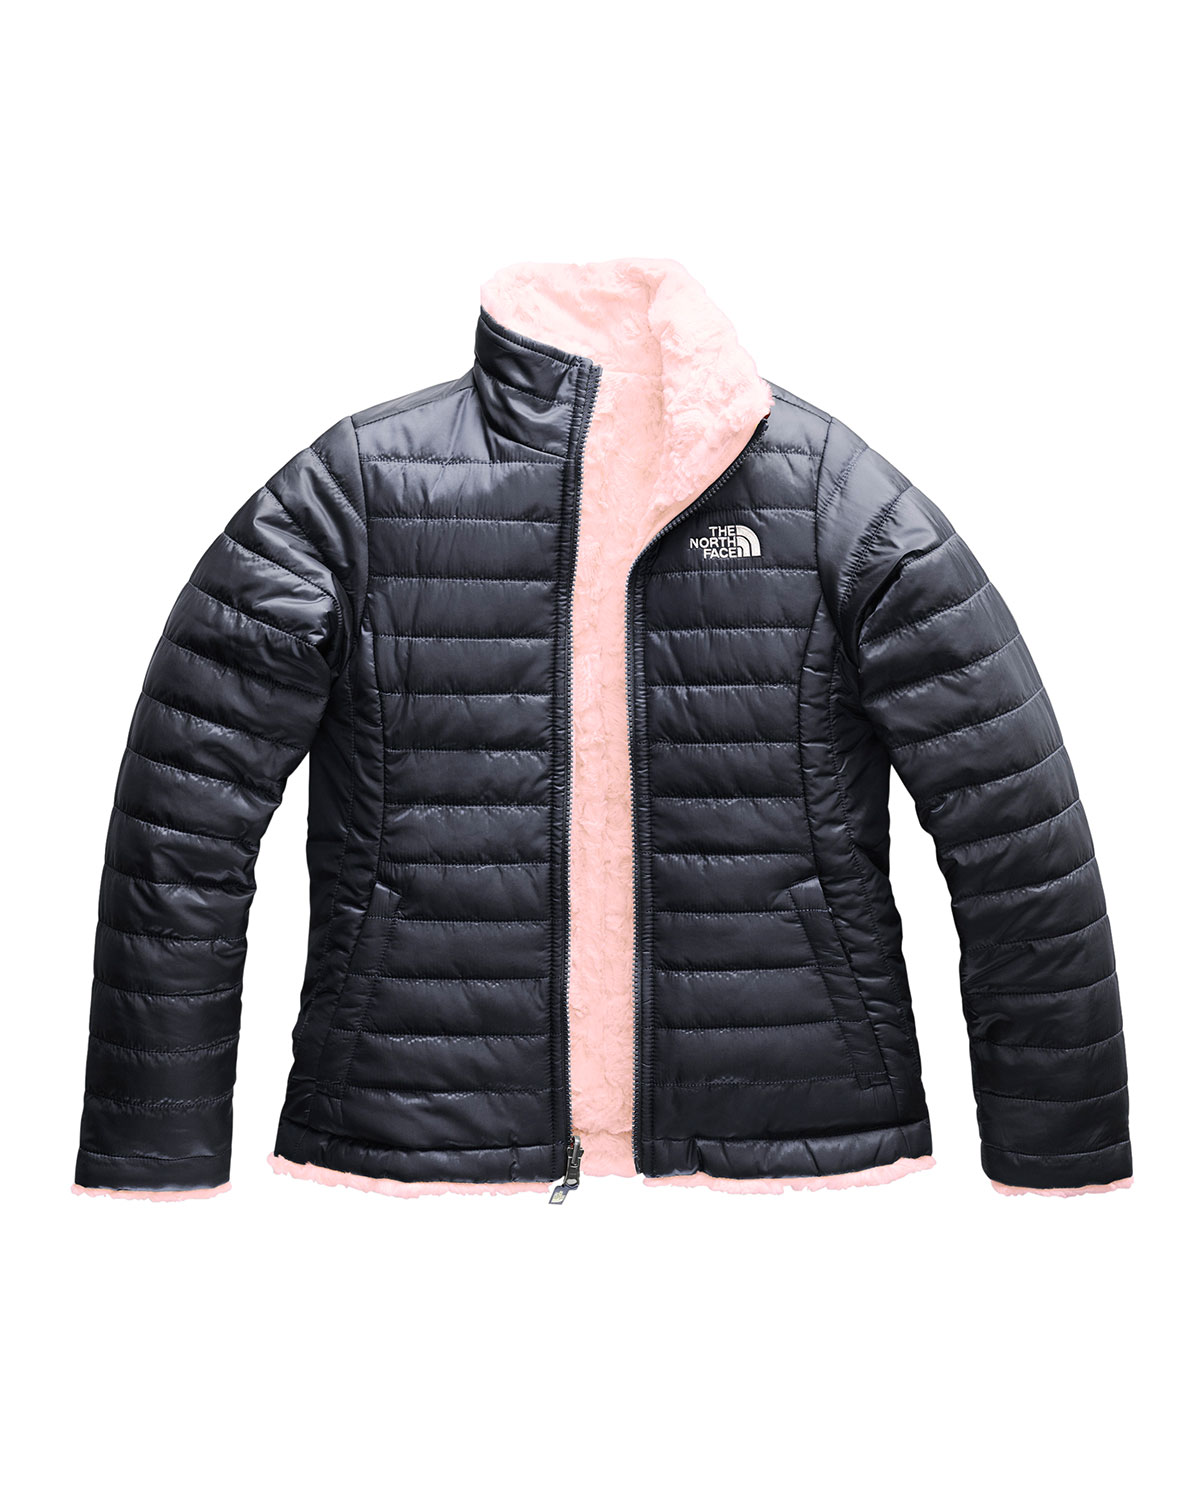 5f2e58772c The North Face Reversible Mossbud Swirl Jacket